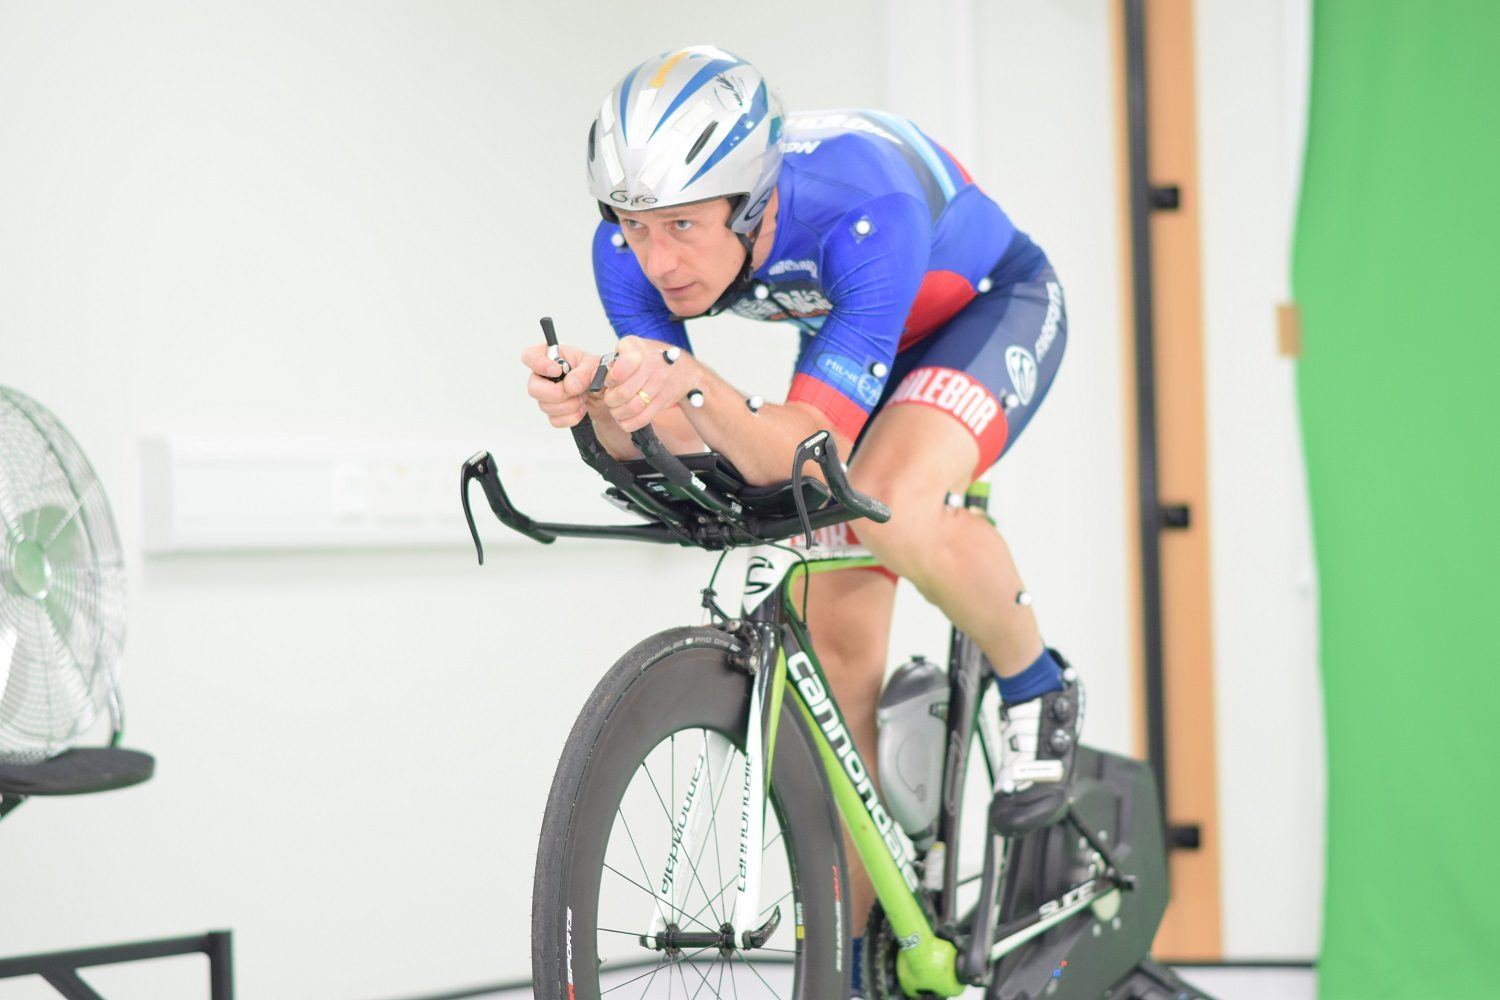 NHS research boosts cyclist pedal power